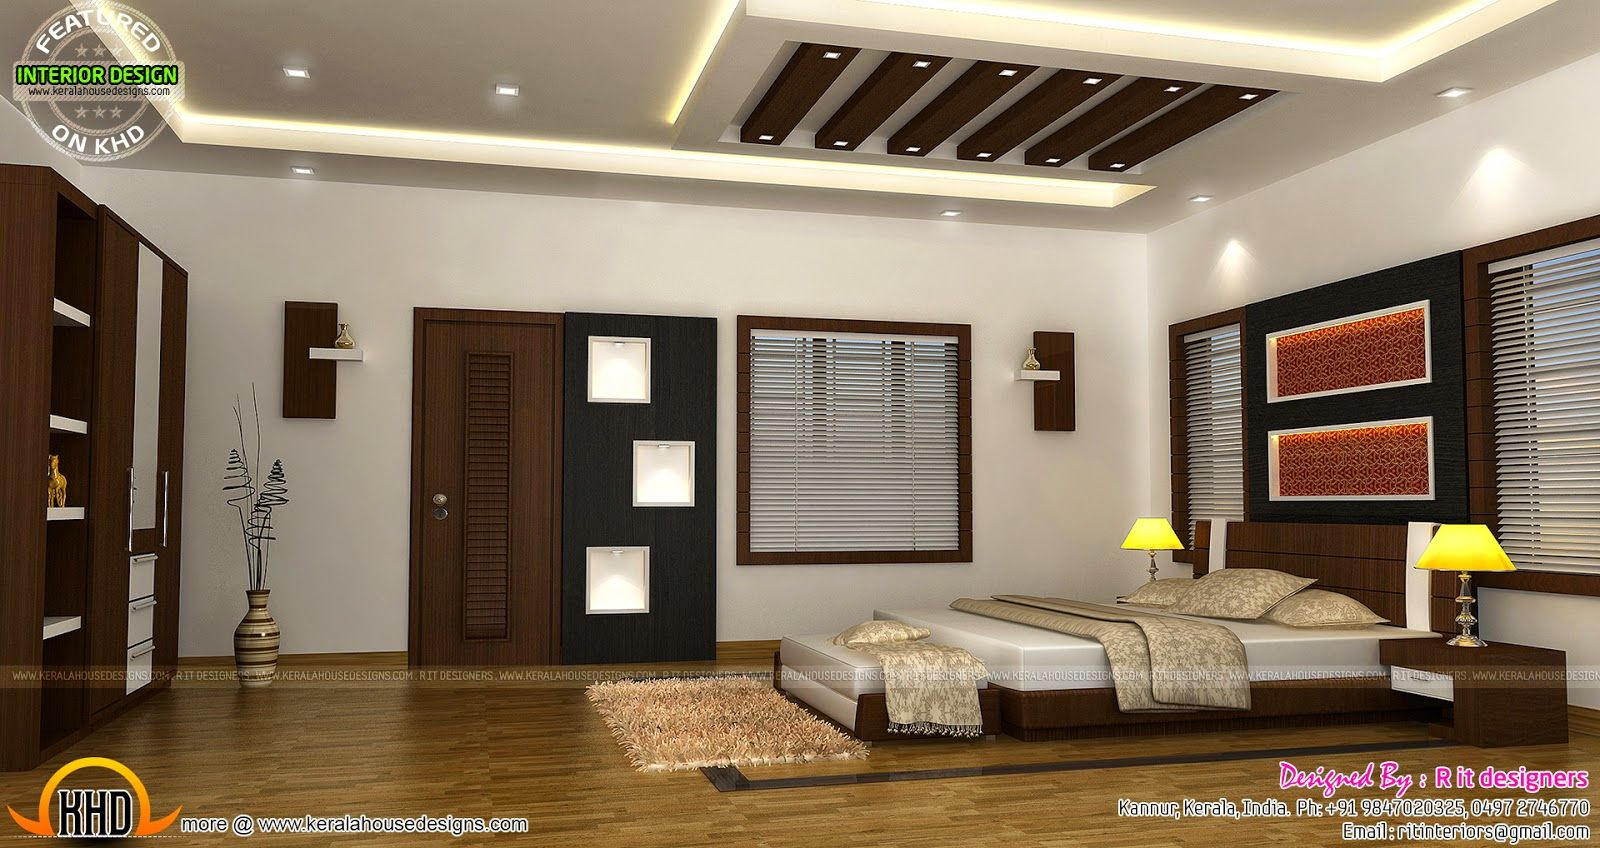 Kerala Home Interior Design Photos Middle Class Interior Design Classes Interior Design Bedroom Interior Design Companies